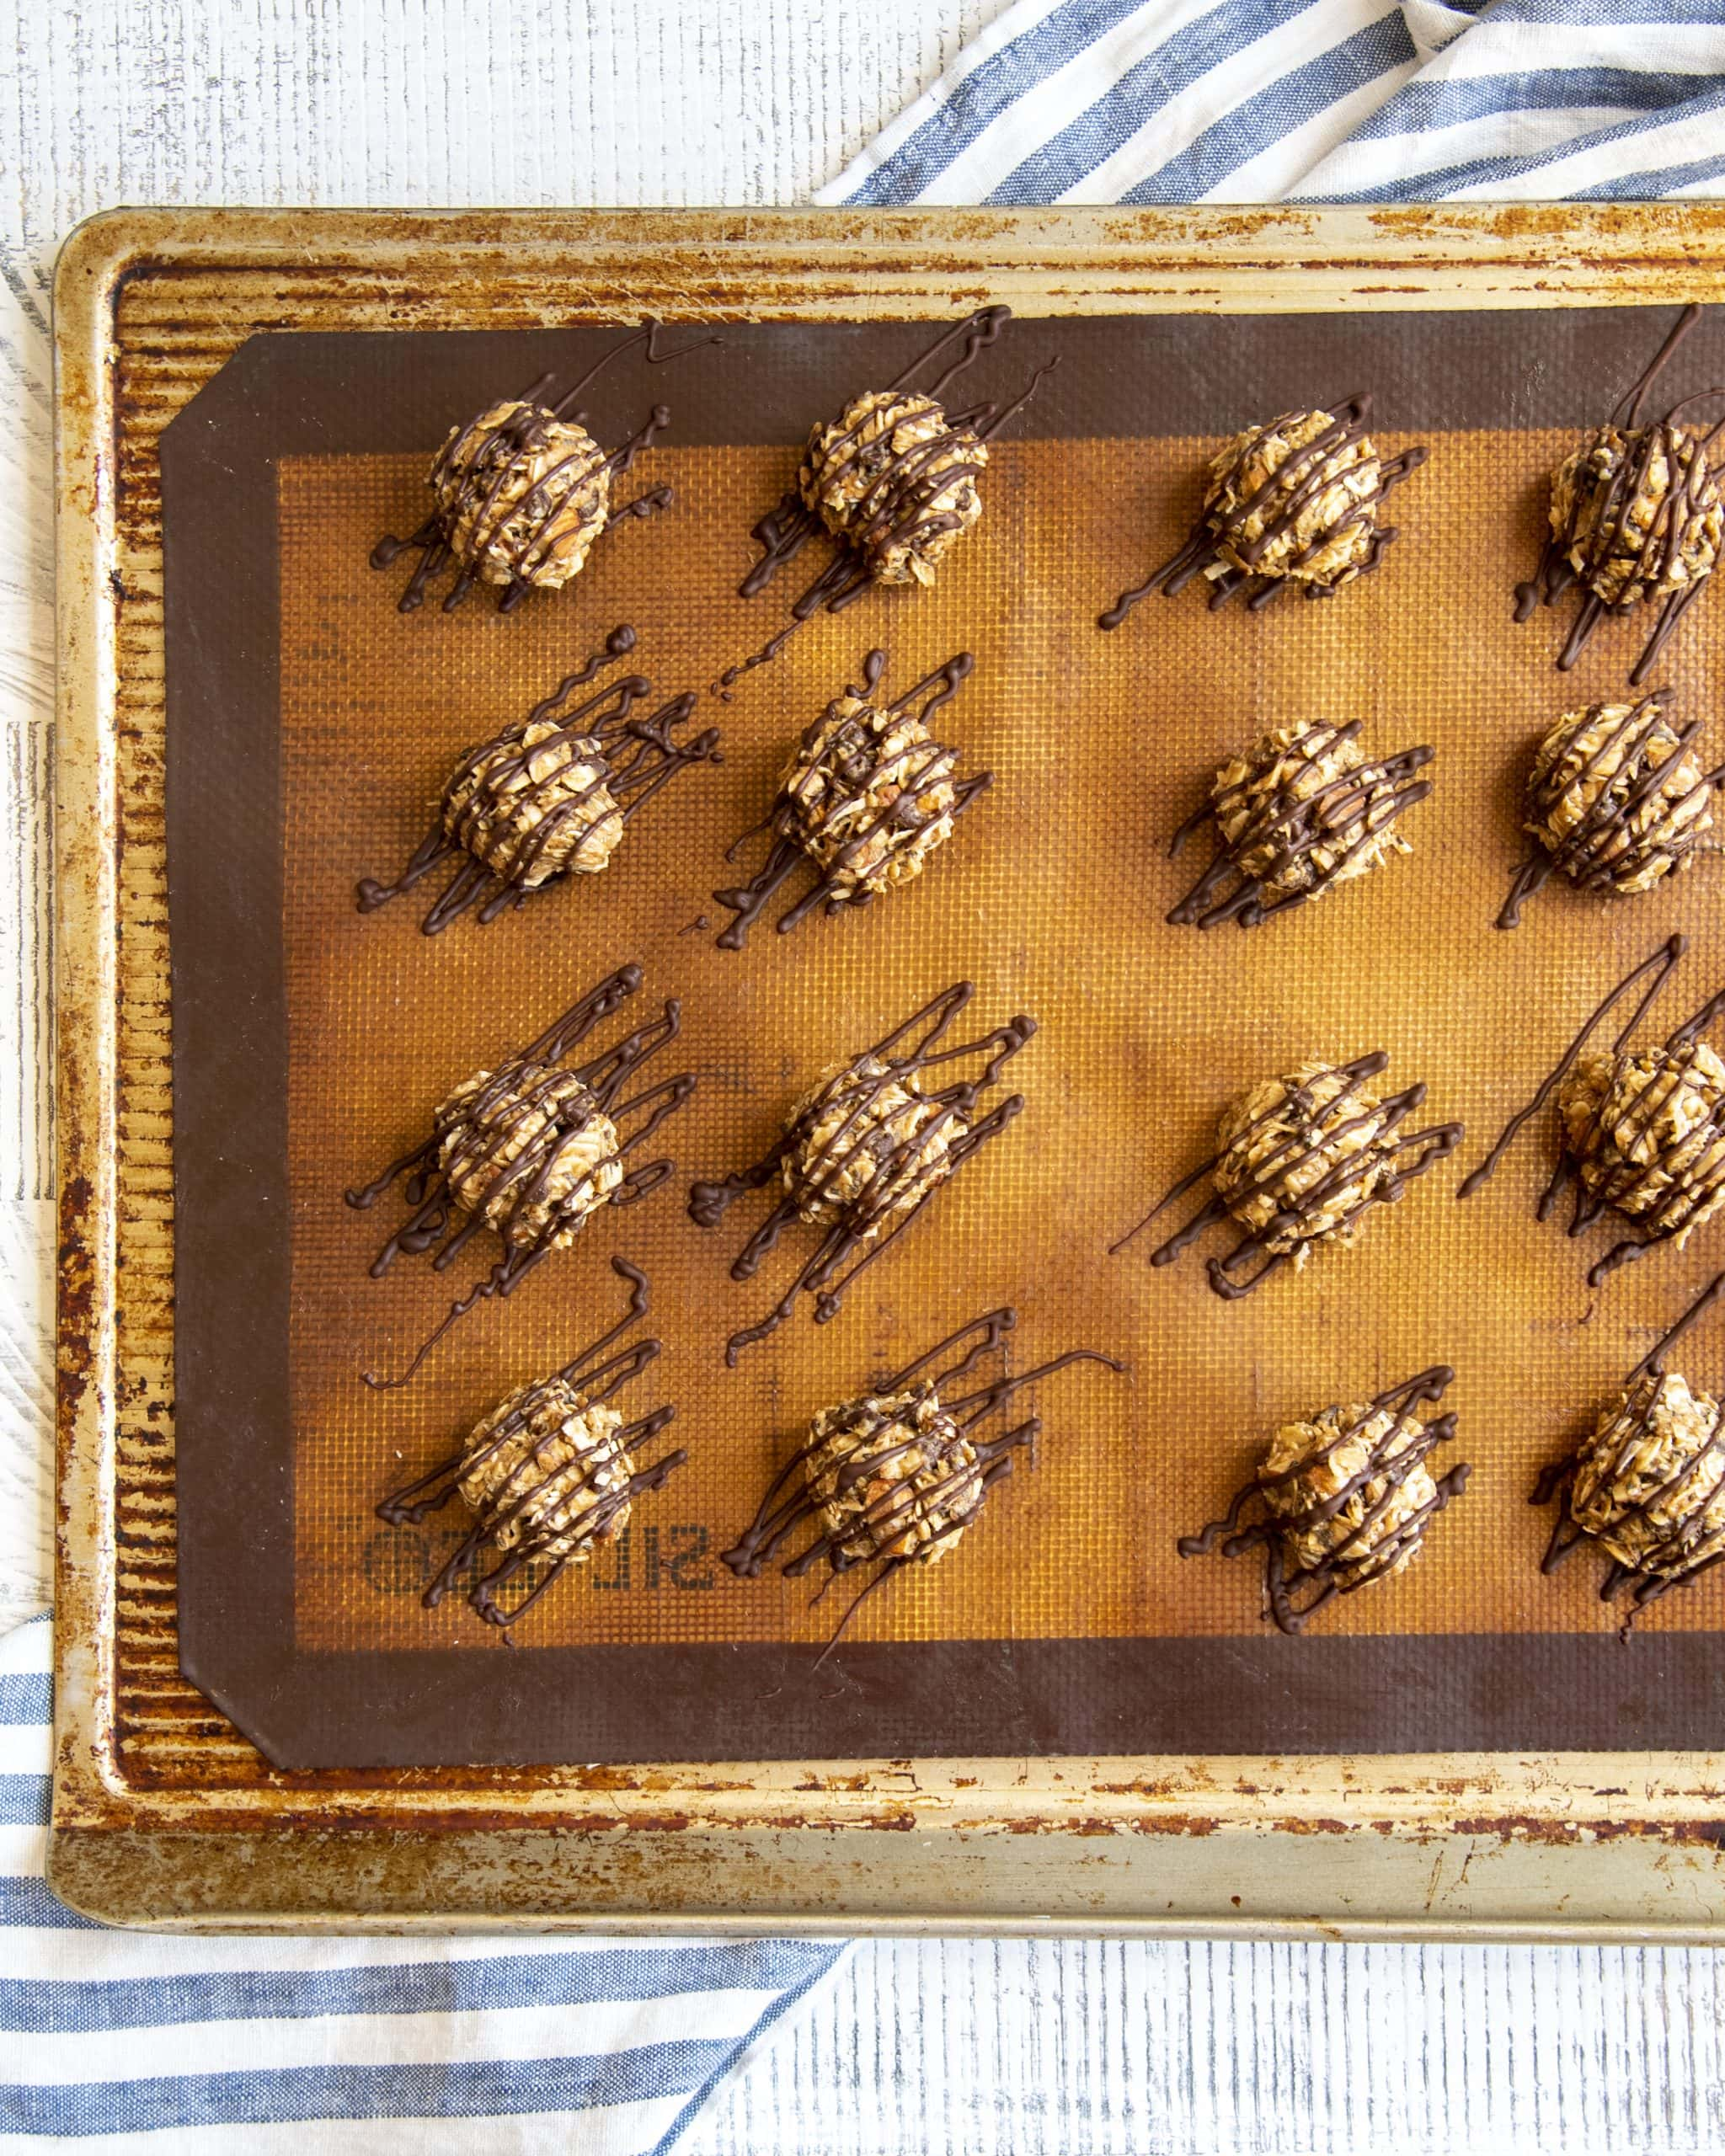 Almond joy energy bites on a baking pan, showing chocolate drizzled on the tops, and over drizzled on the sides.